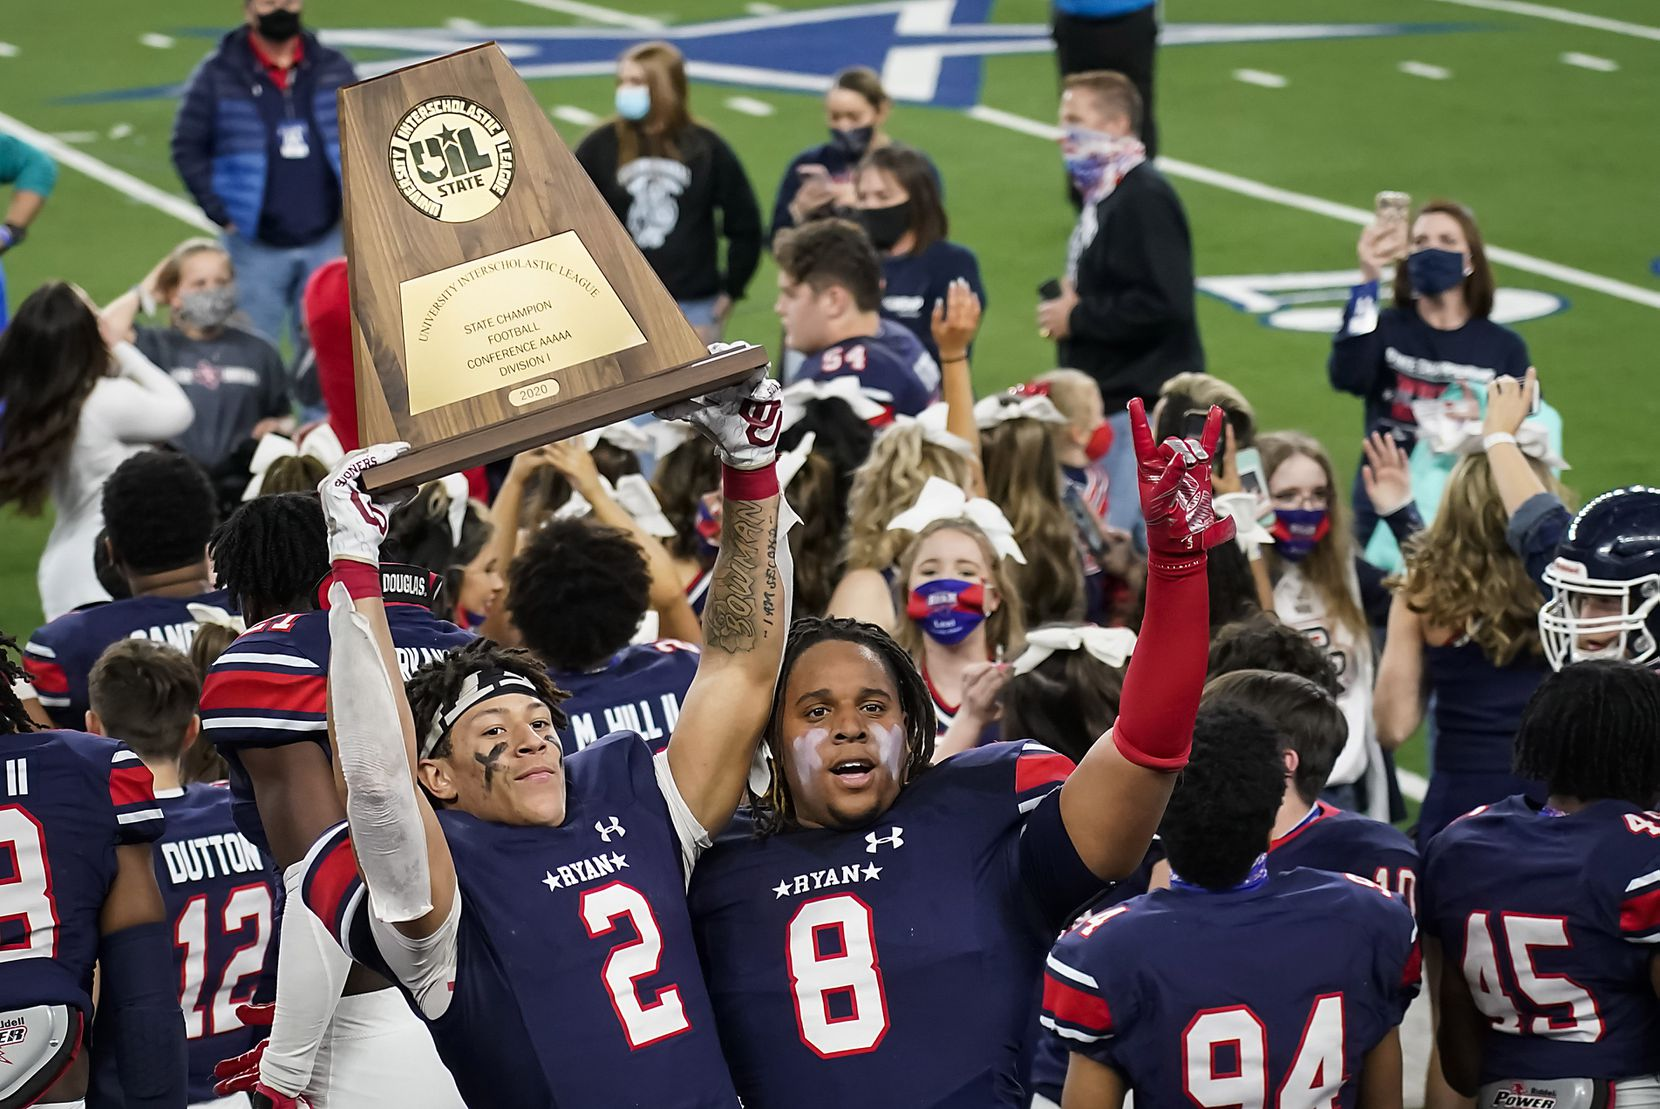 Denton Ryan won its third state title last season, beating Cedar Park 59-14 in the Class 5A Division I championship game. (Smiley N. Pool/The Dallas Morning News)